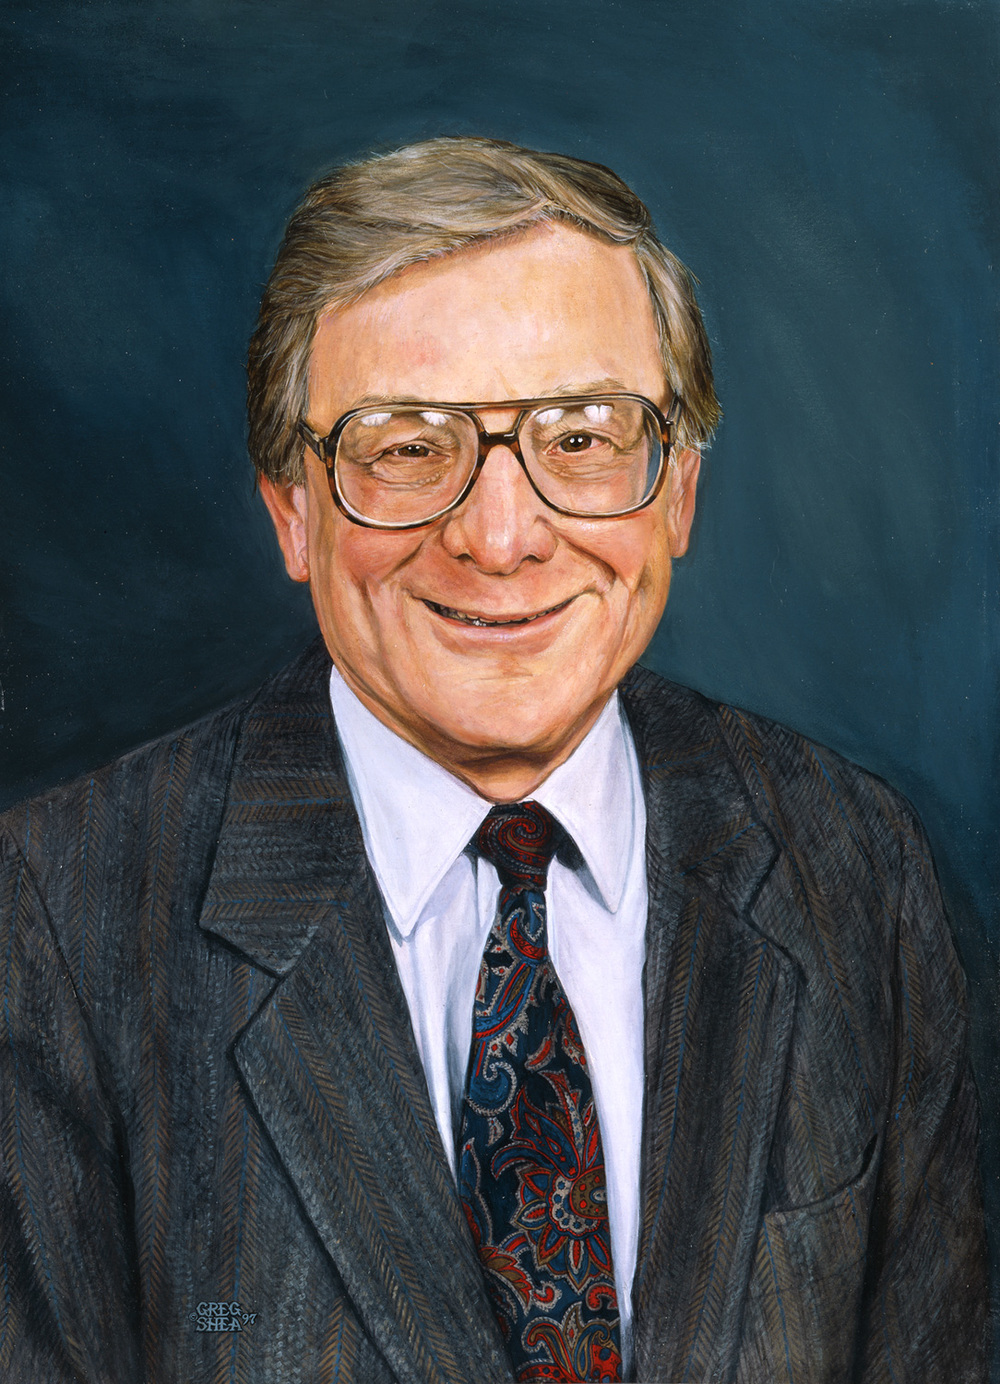 Memorial for a Principal  , portrait commission, 1997  .   Acrylic on board.     Private collection  .